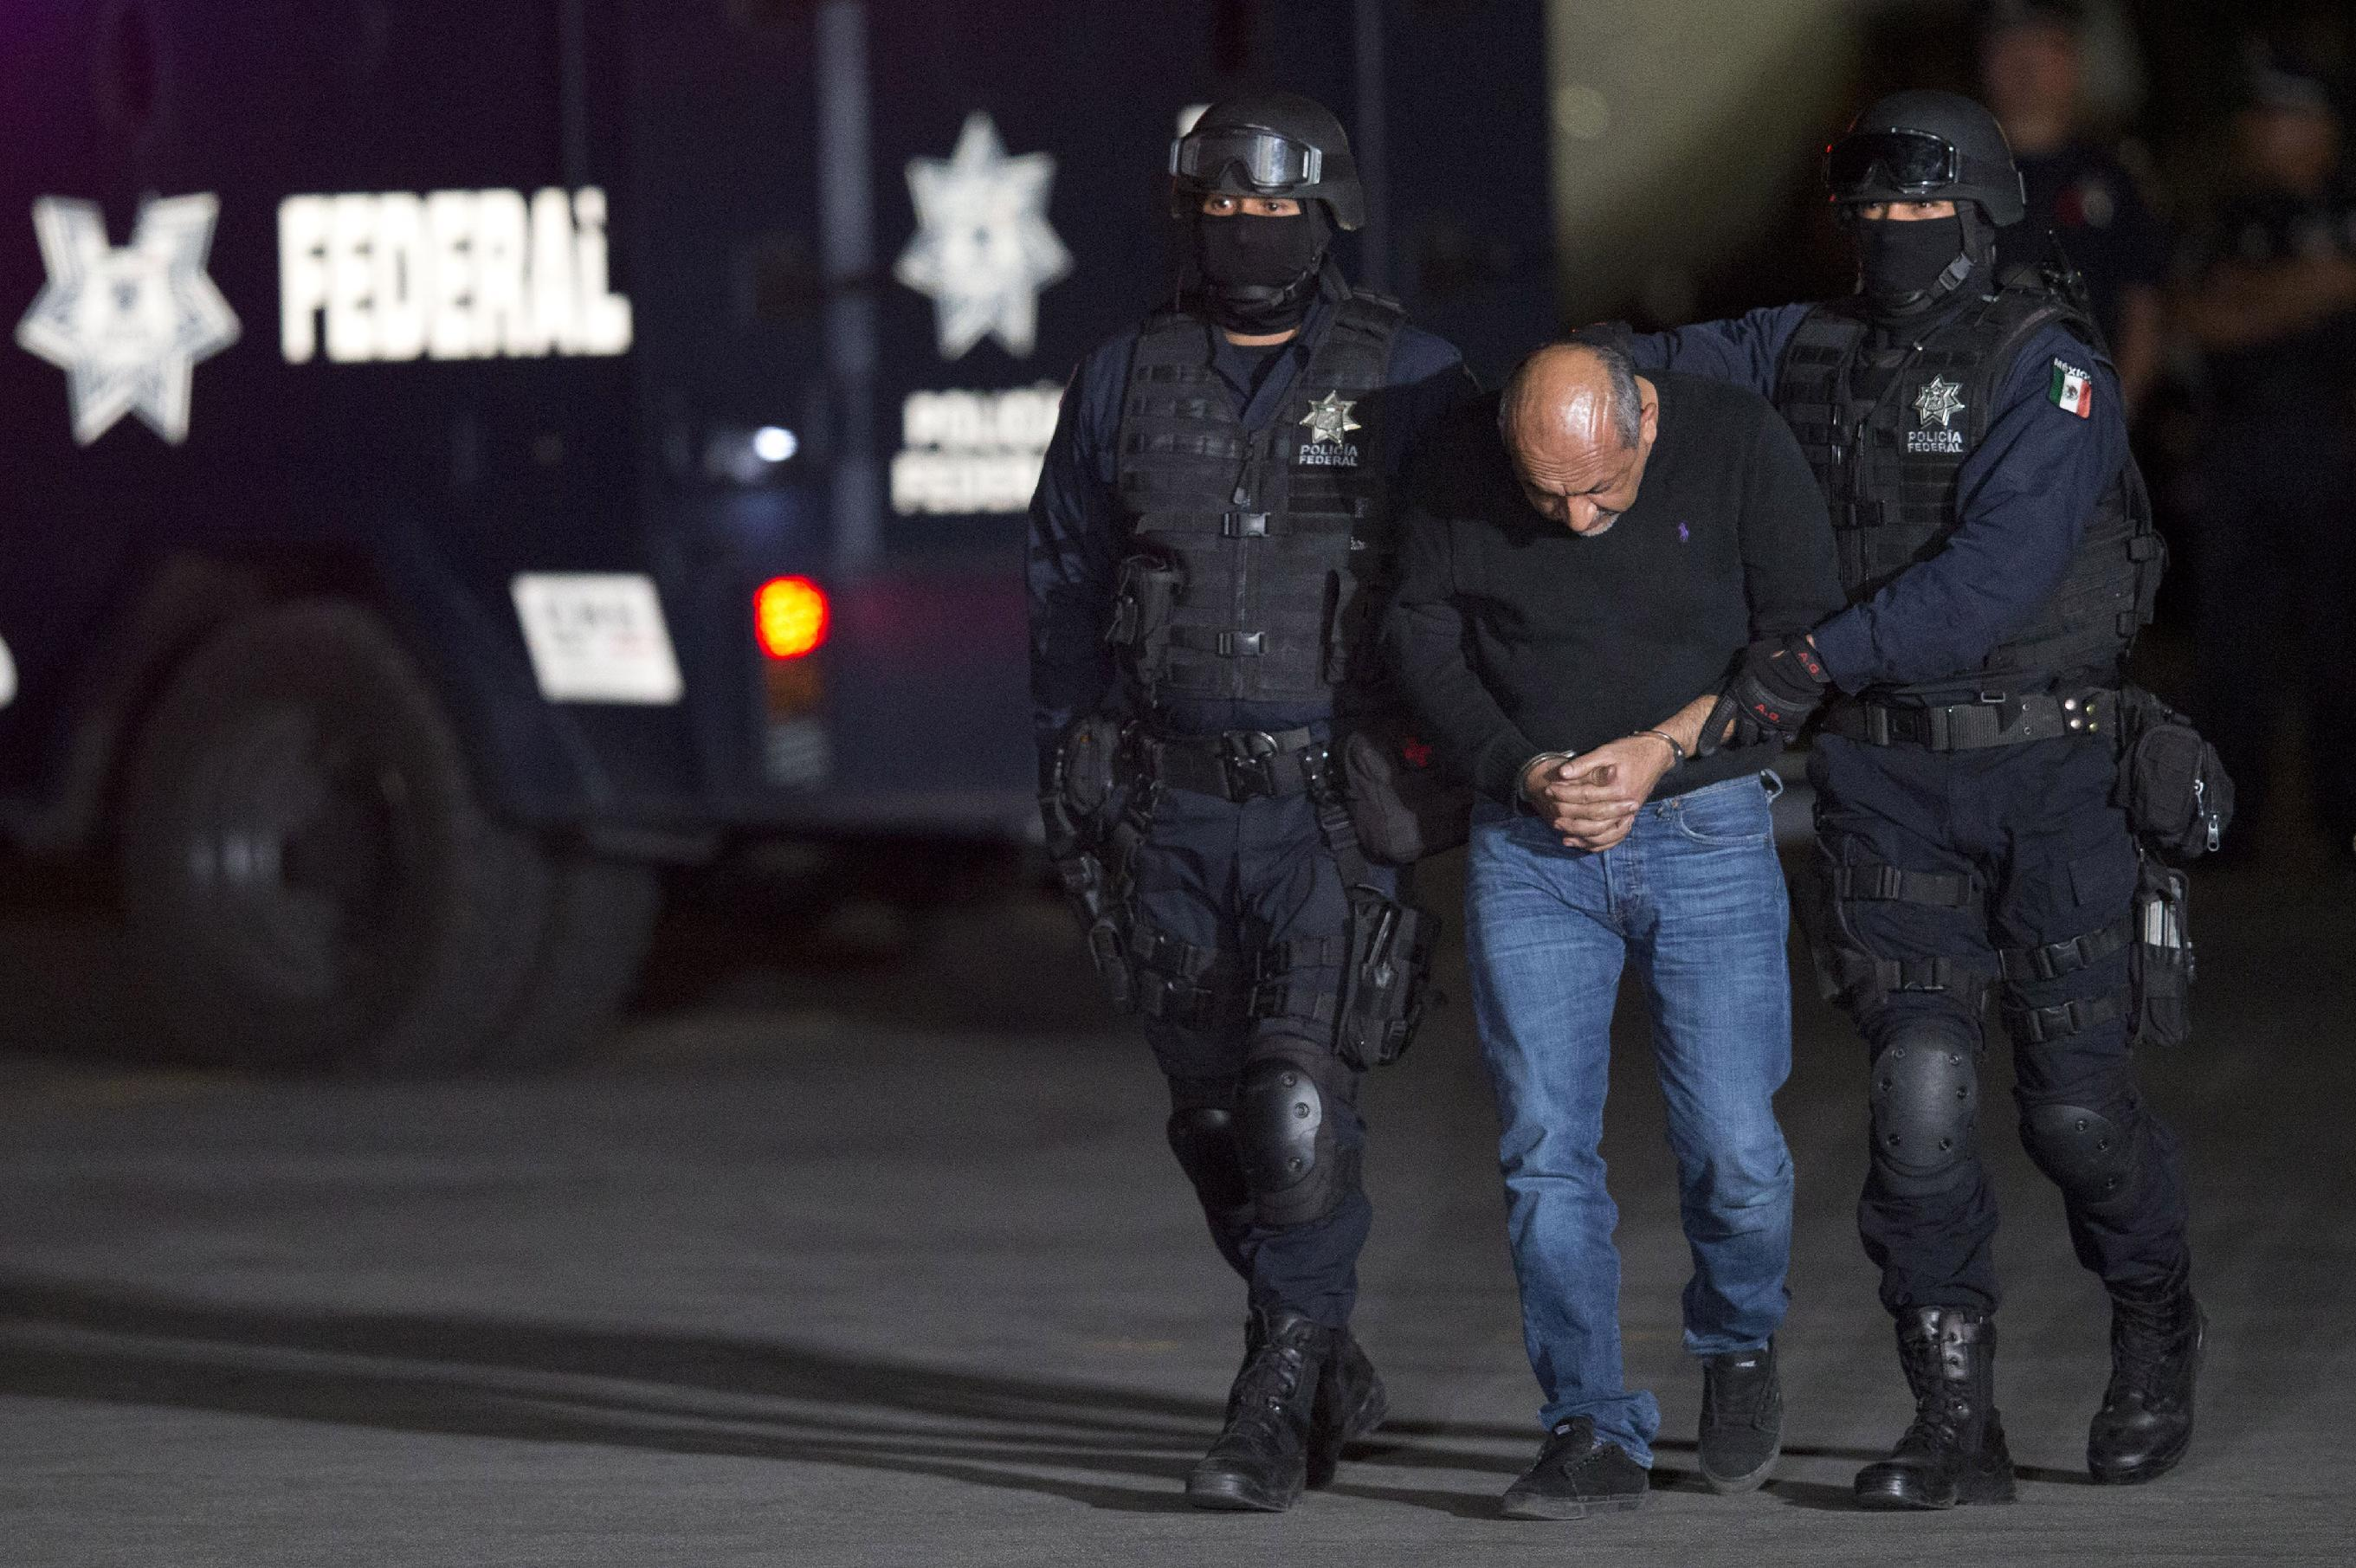 Mexico drug lord captures change but don't lower trafficking